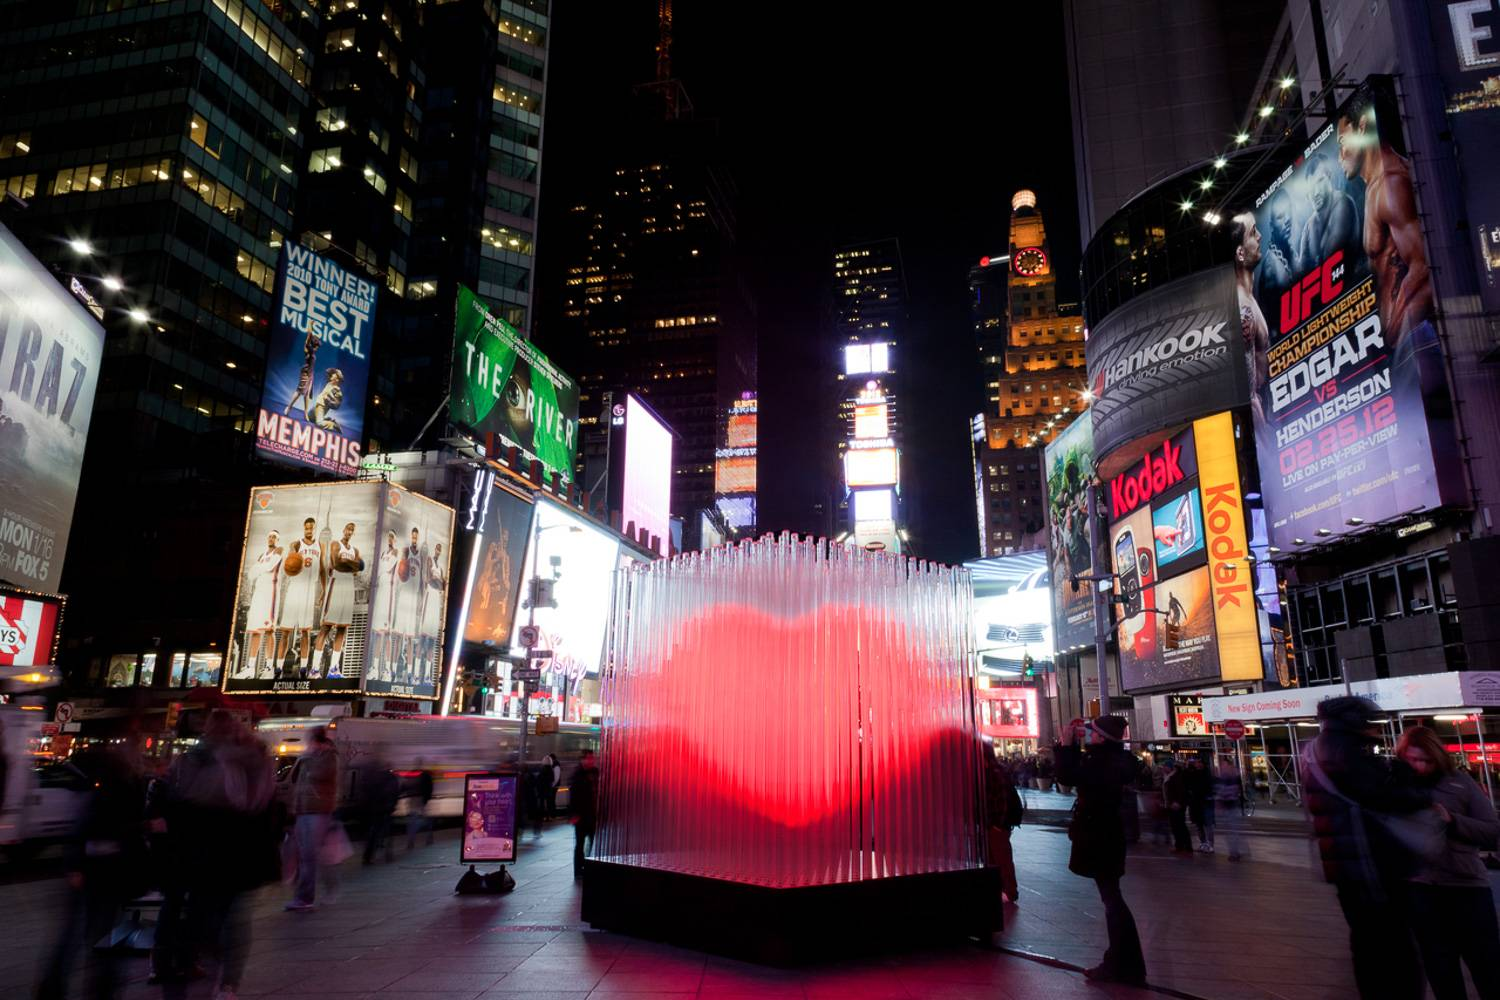 How to Plan an Amazing NYC Valentine's Day (On a Budget)